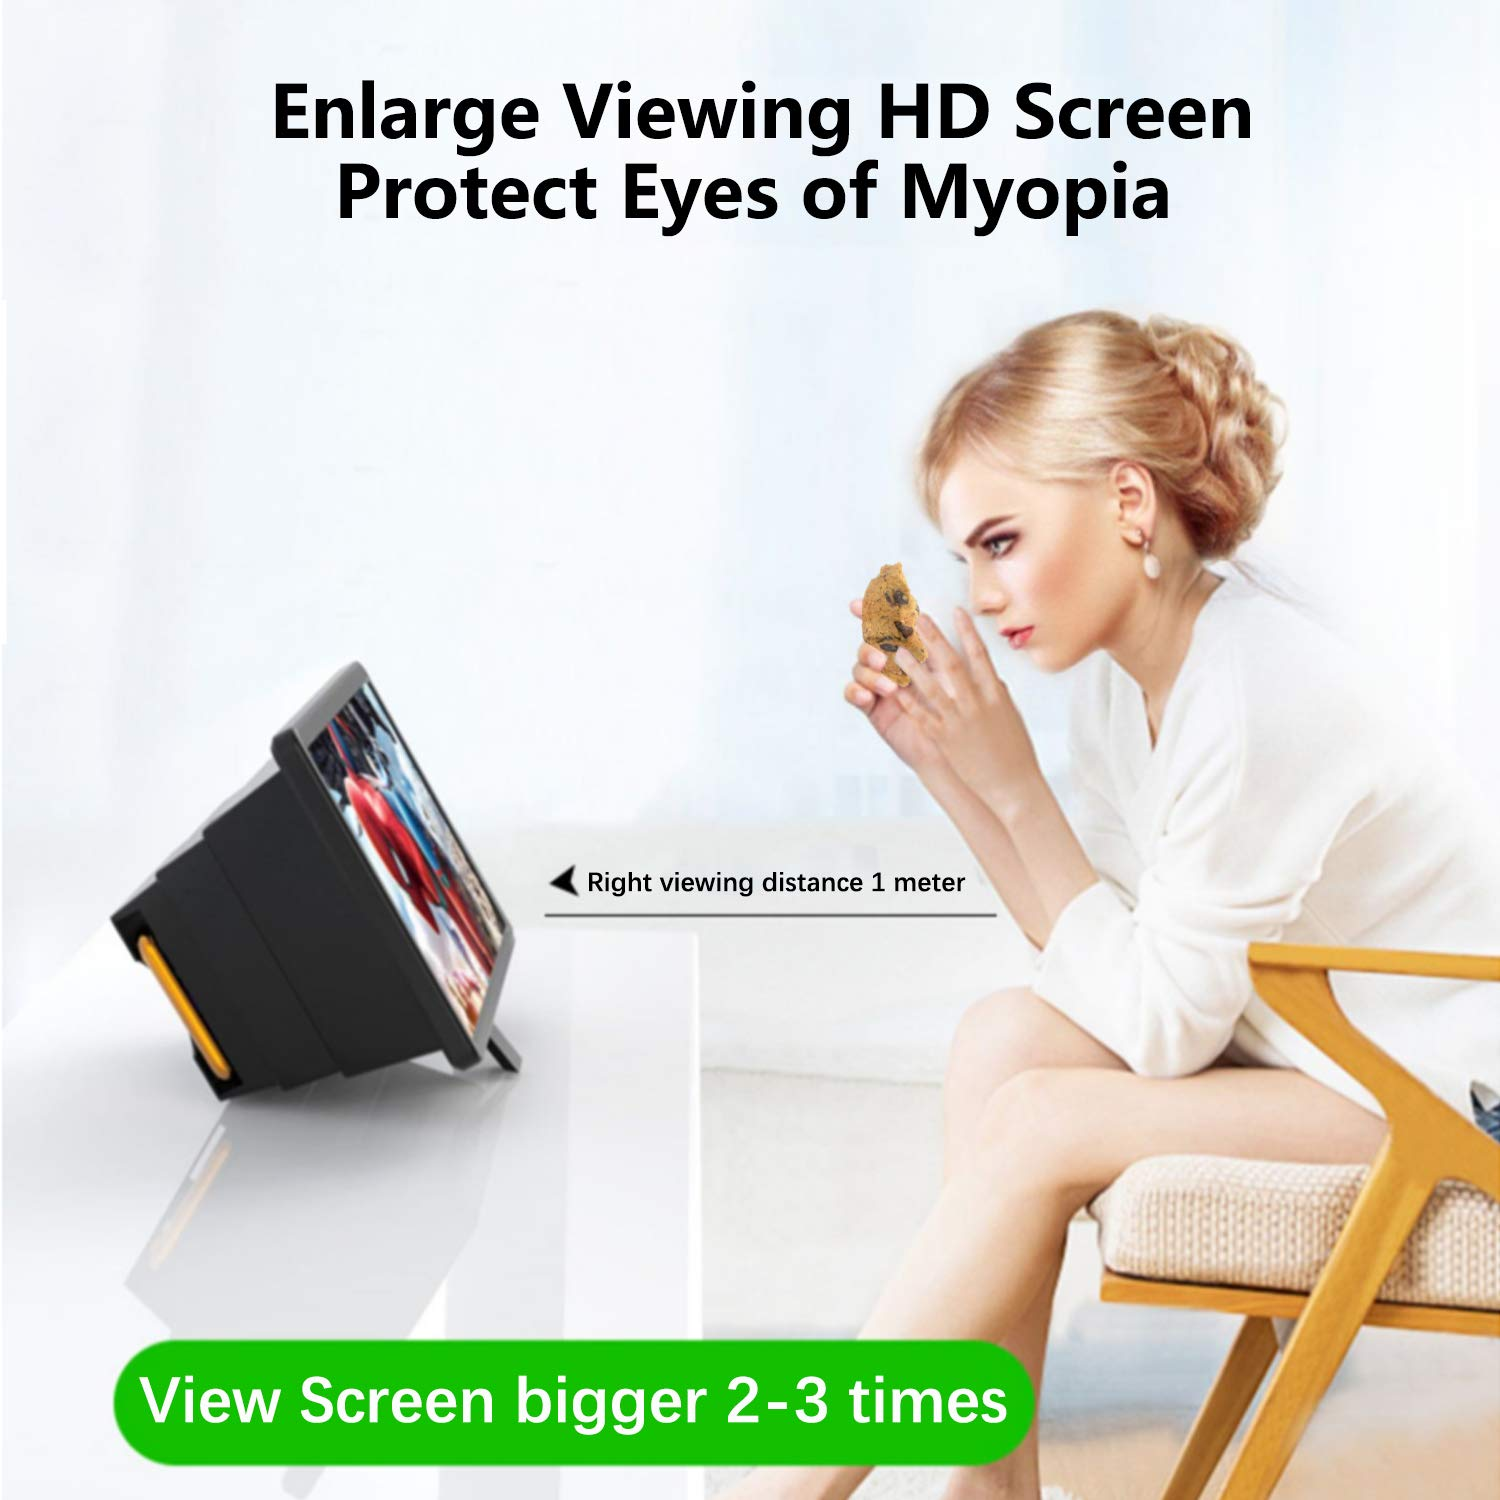 Phone Screen Magnifier 3D HD Enlarger Portable Movies Videos Make Big Screen